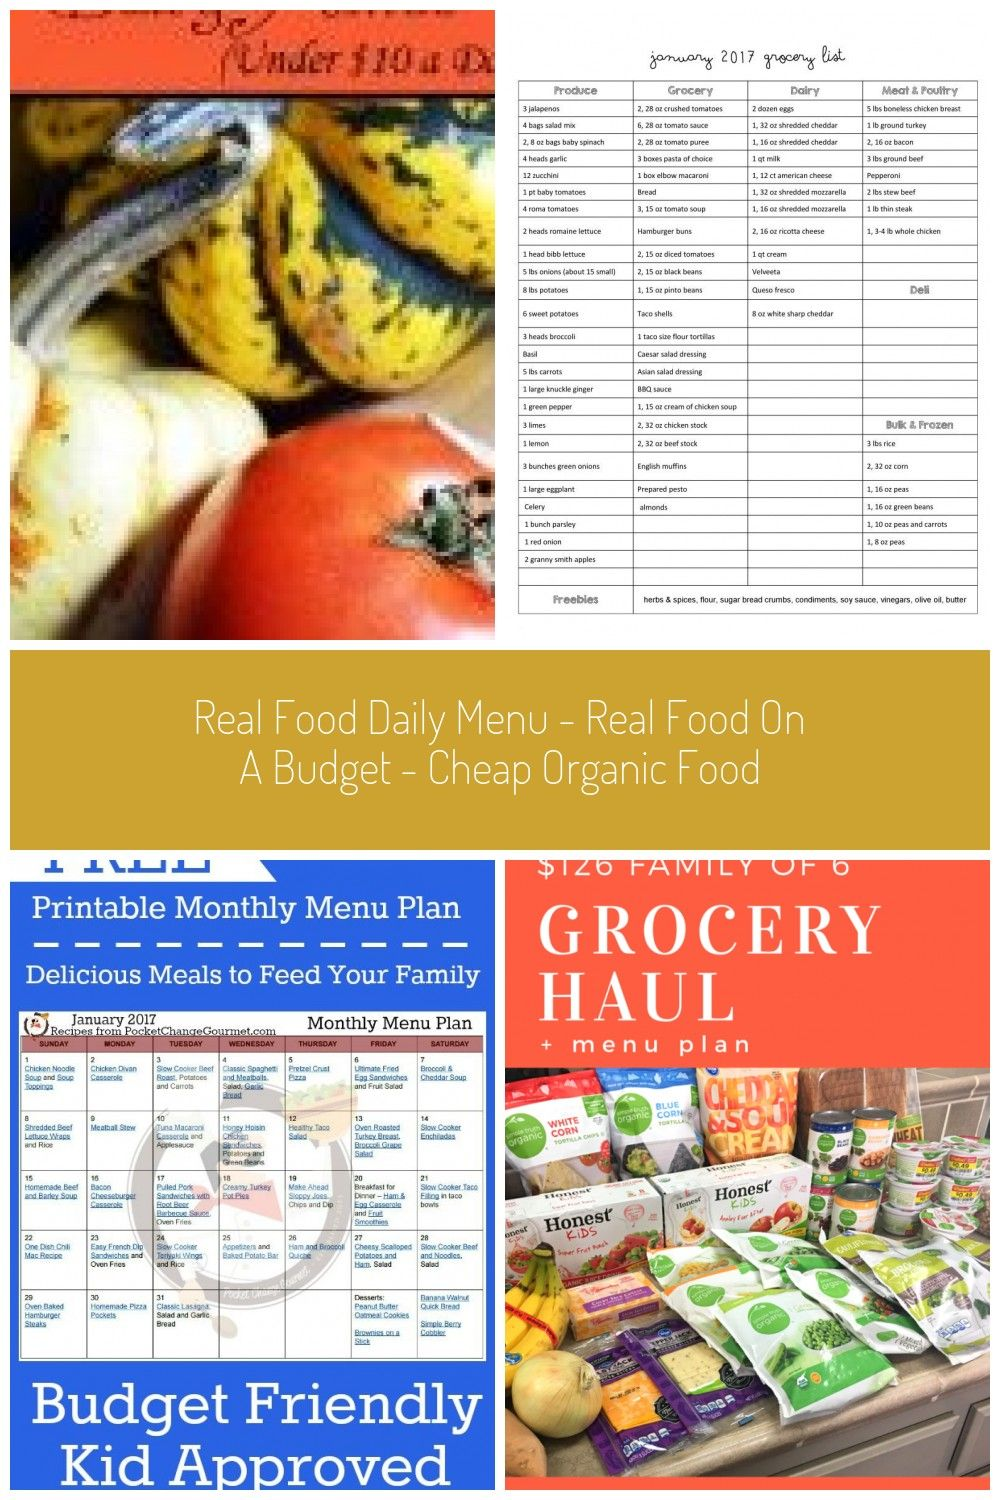 Real Food Daily Menu Real Food On A Budget Cheap Organic Food How To Create Healthy Organic Meals On A Tight Budget For Less Than 10 Per Day Family Budget Menu